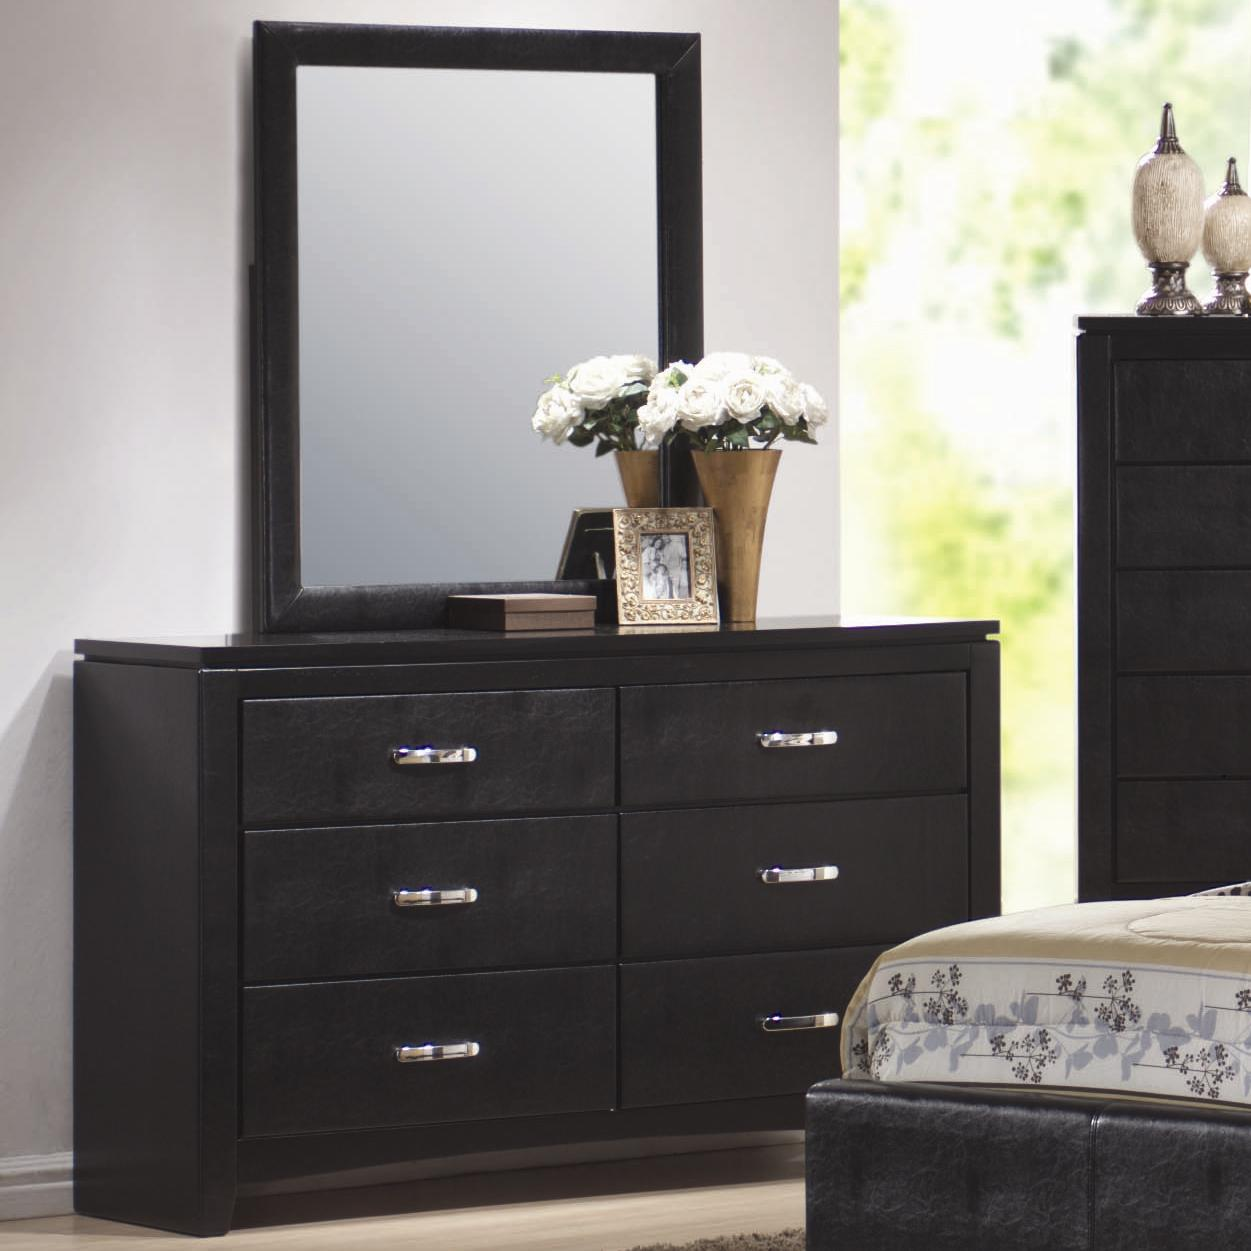 Coaster Dylan Dresser and Mirror - Item Number: 201403+4